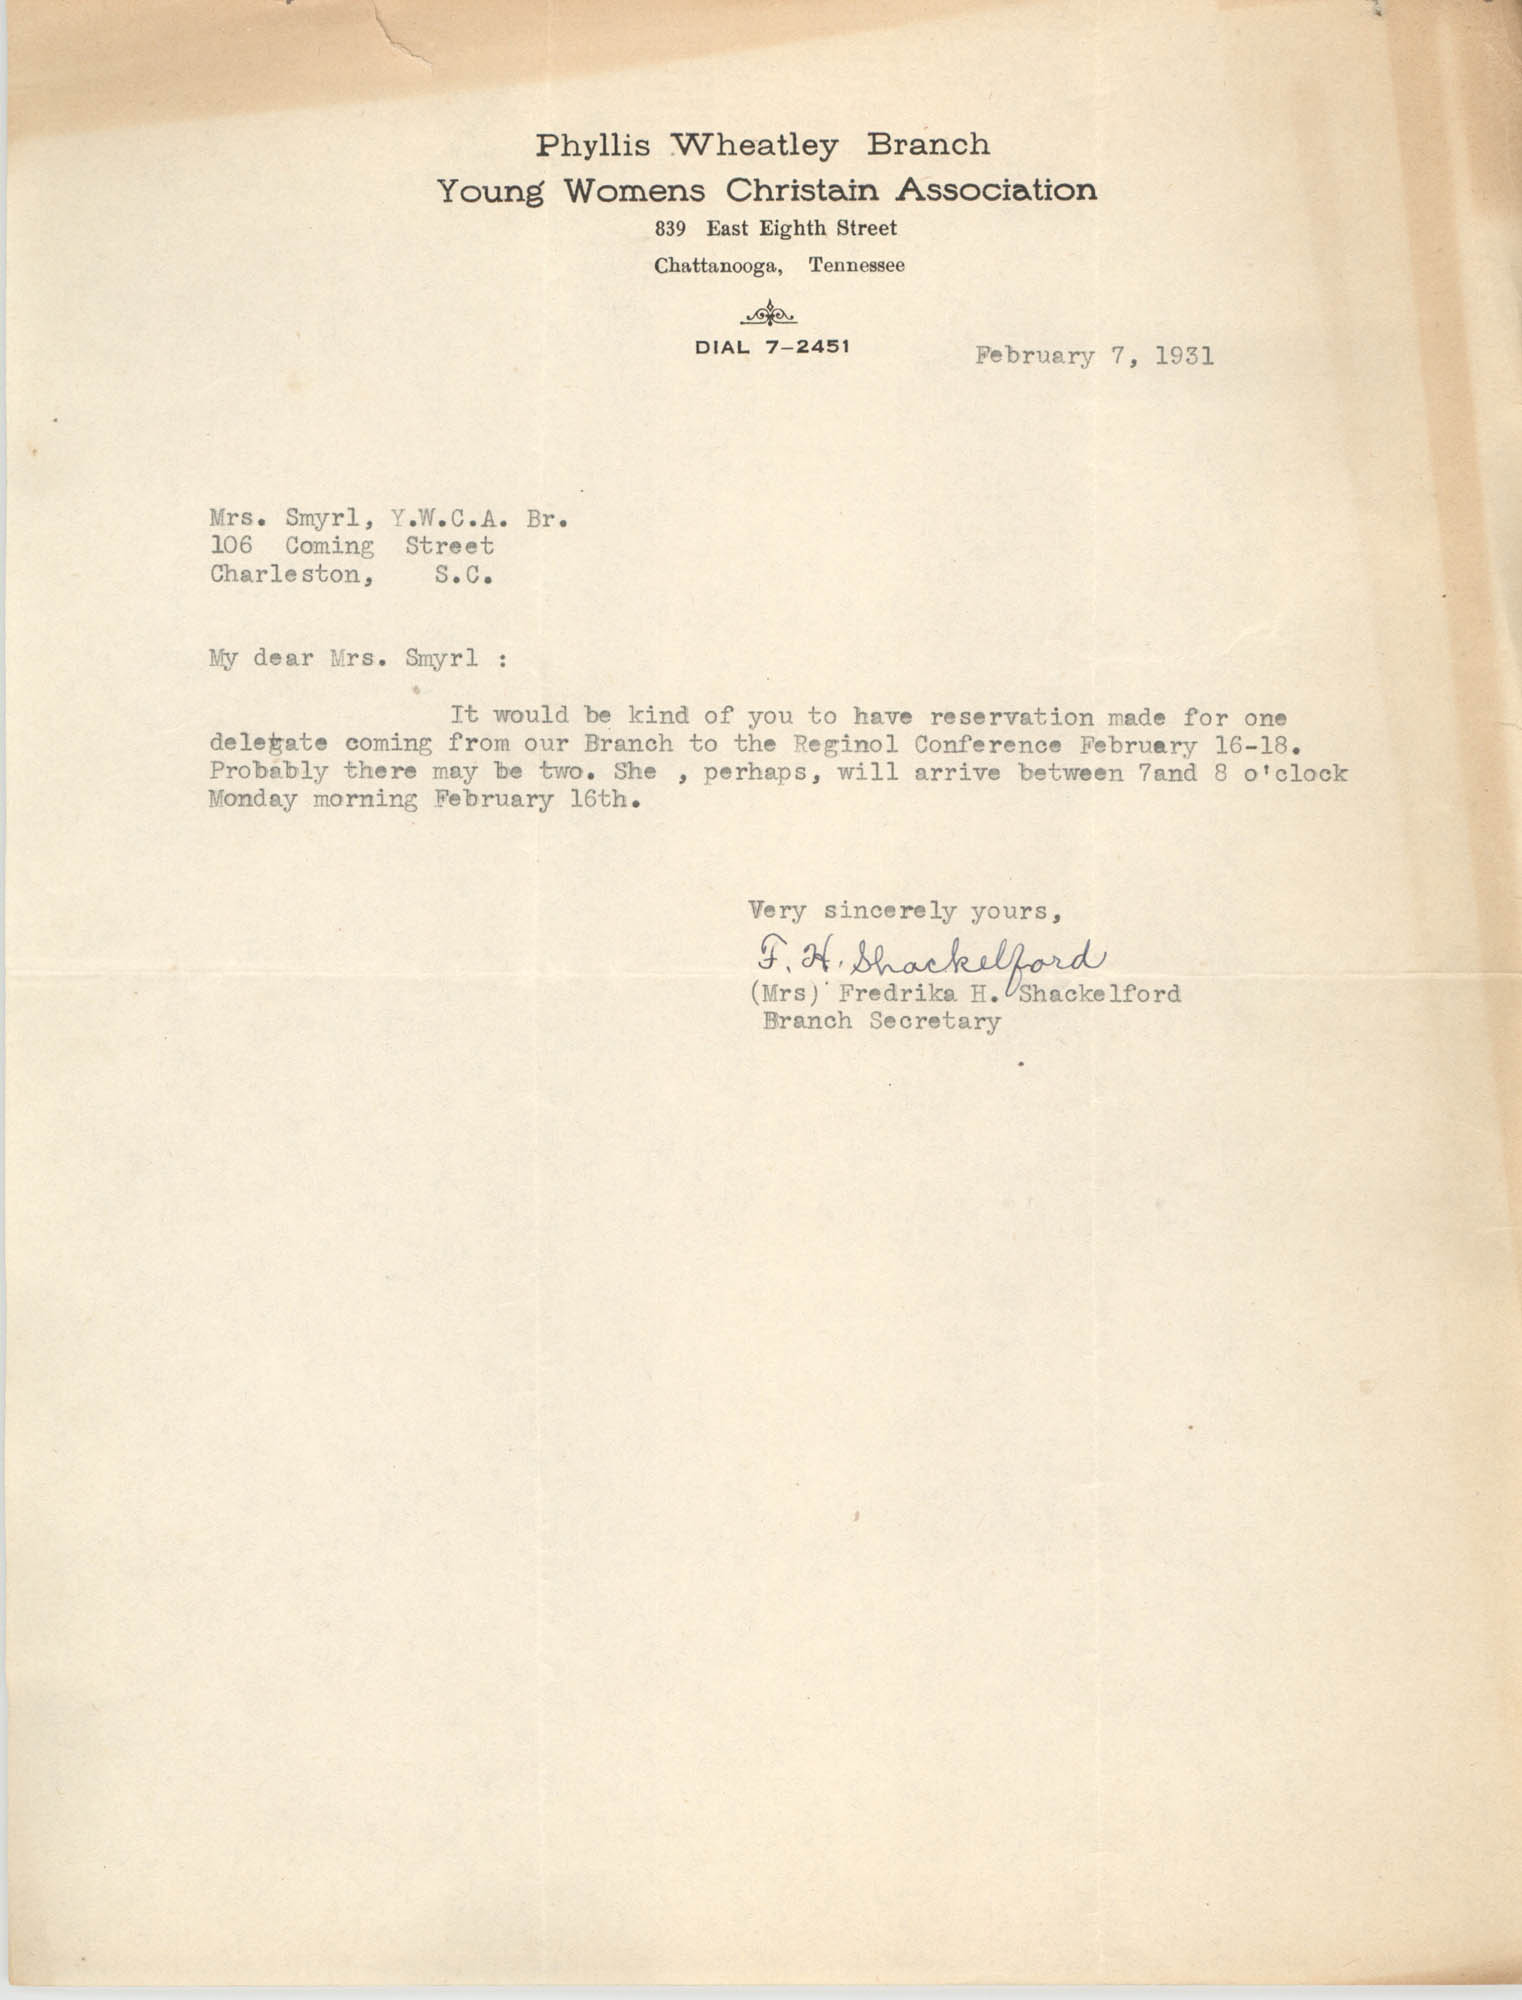 Letter from Fredrika H. Shackelford to Ella L. Smyrl, February 7, 1931